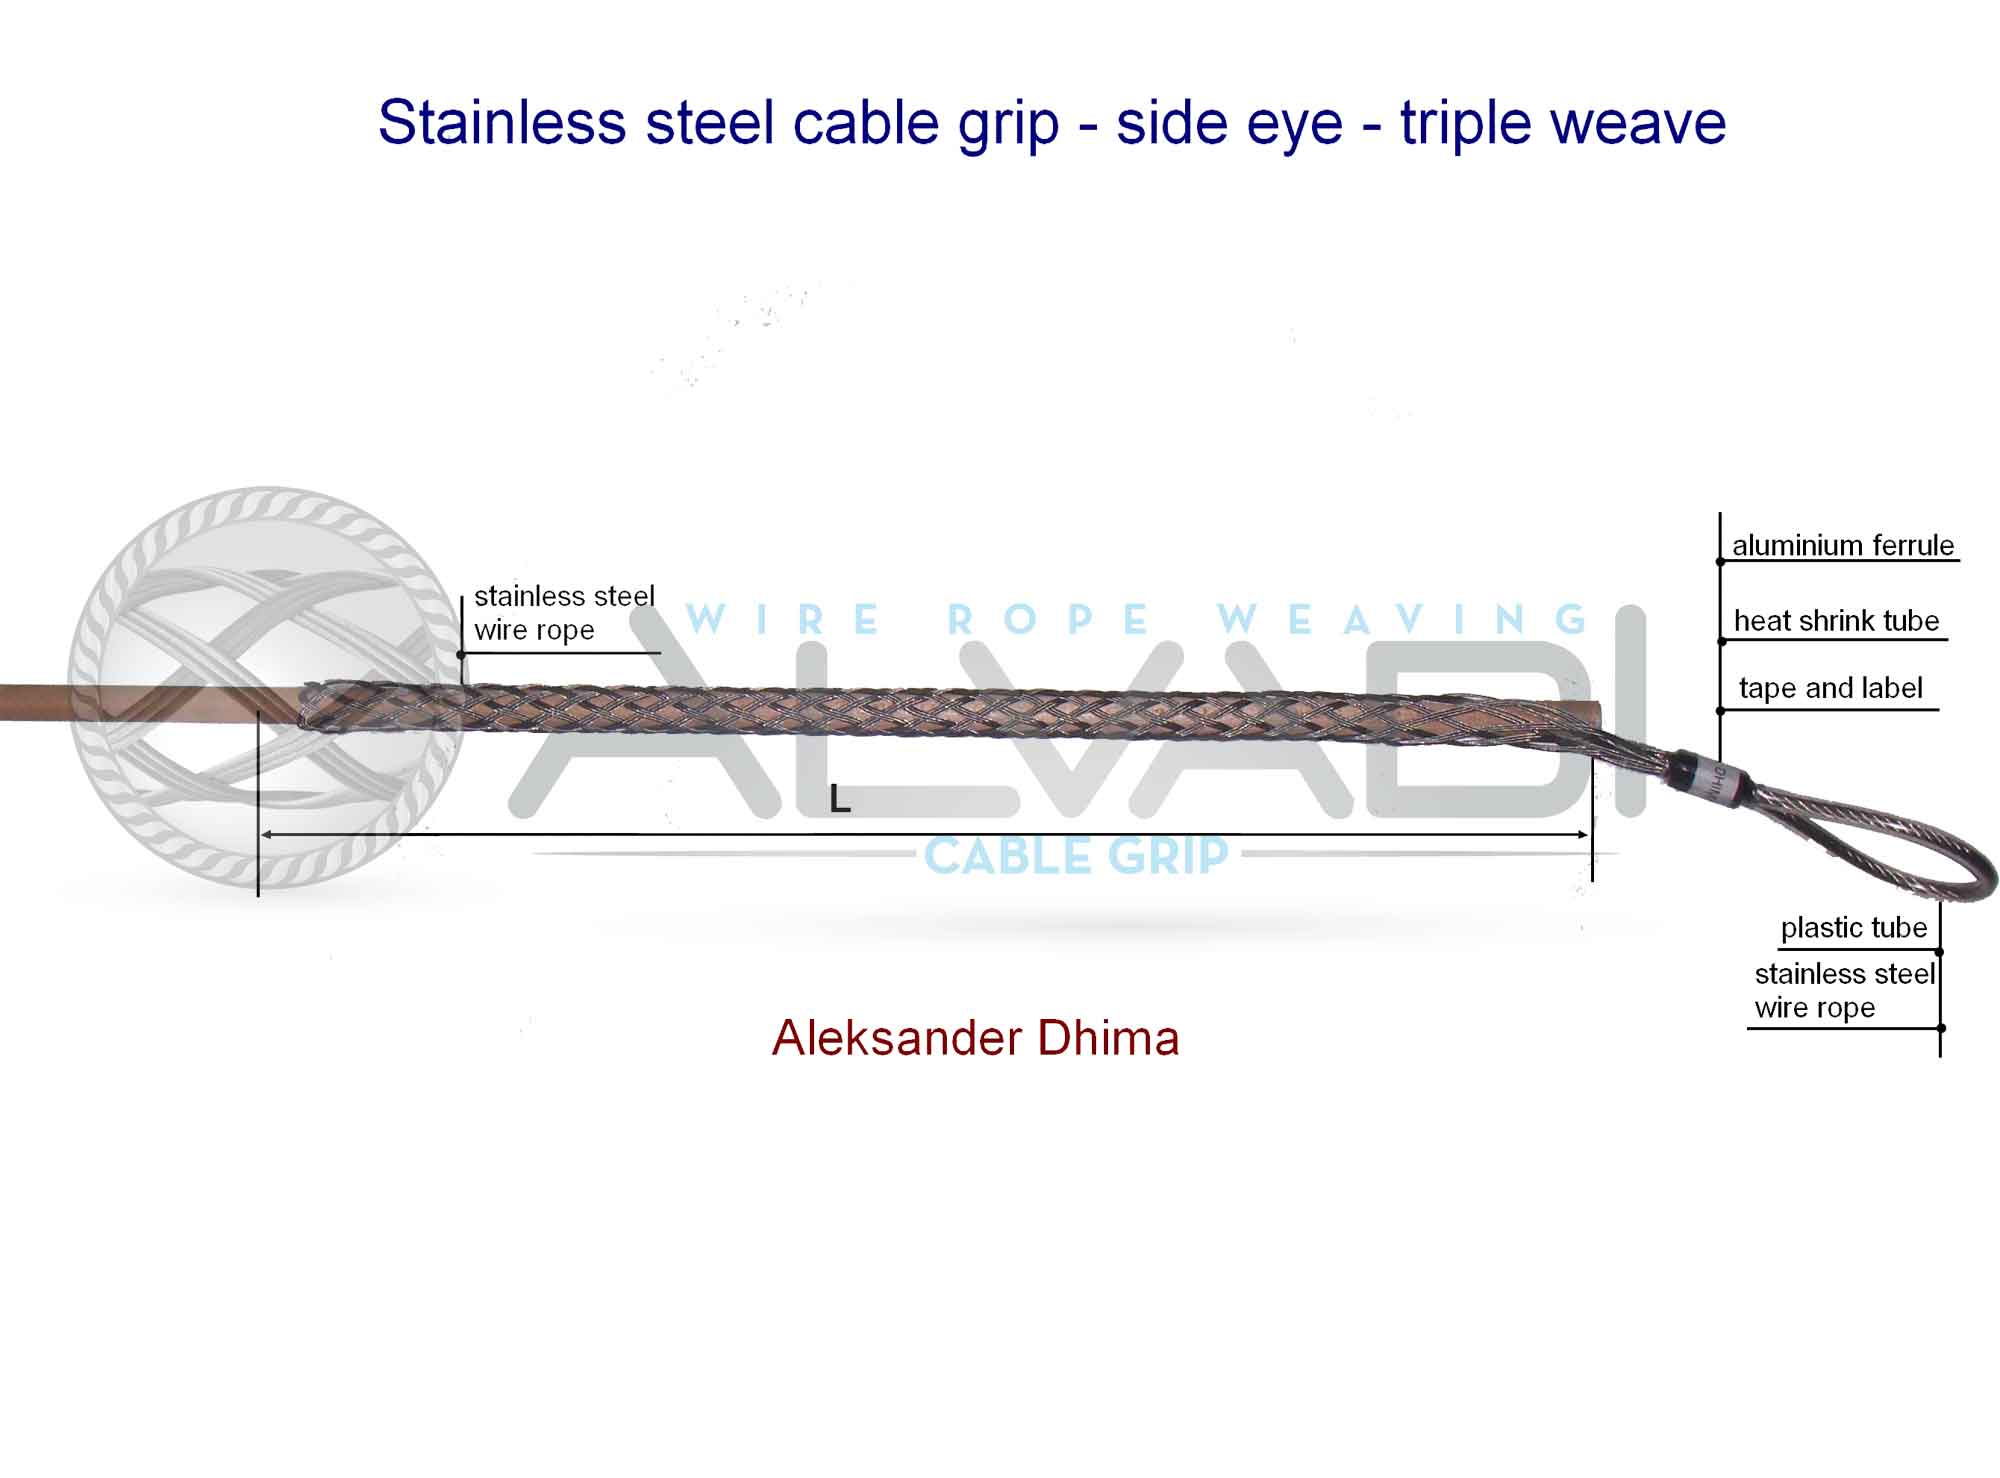 Stainless Steel Cable Grip Side Eye Triple Weave Normal Alvadi Wire Diagram